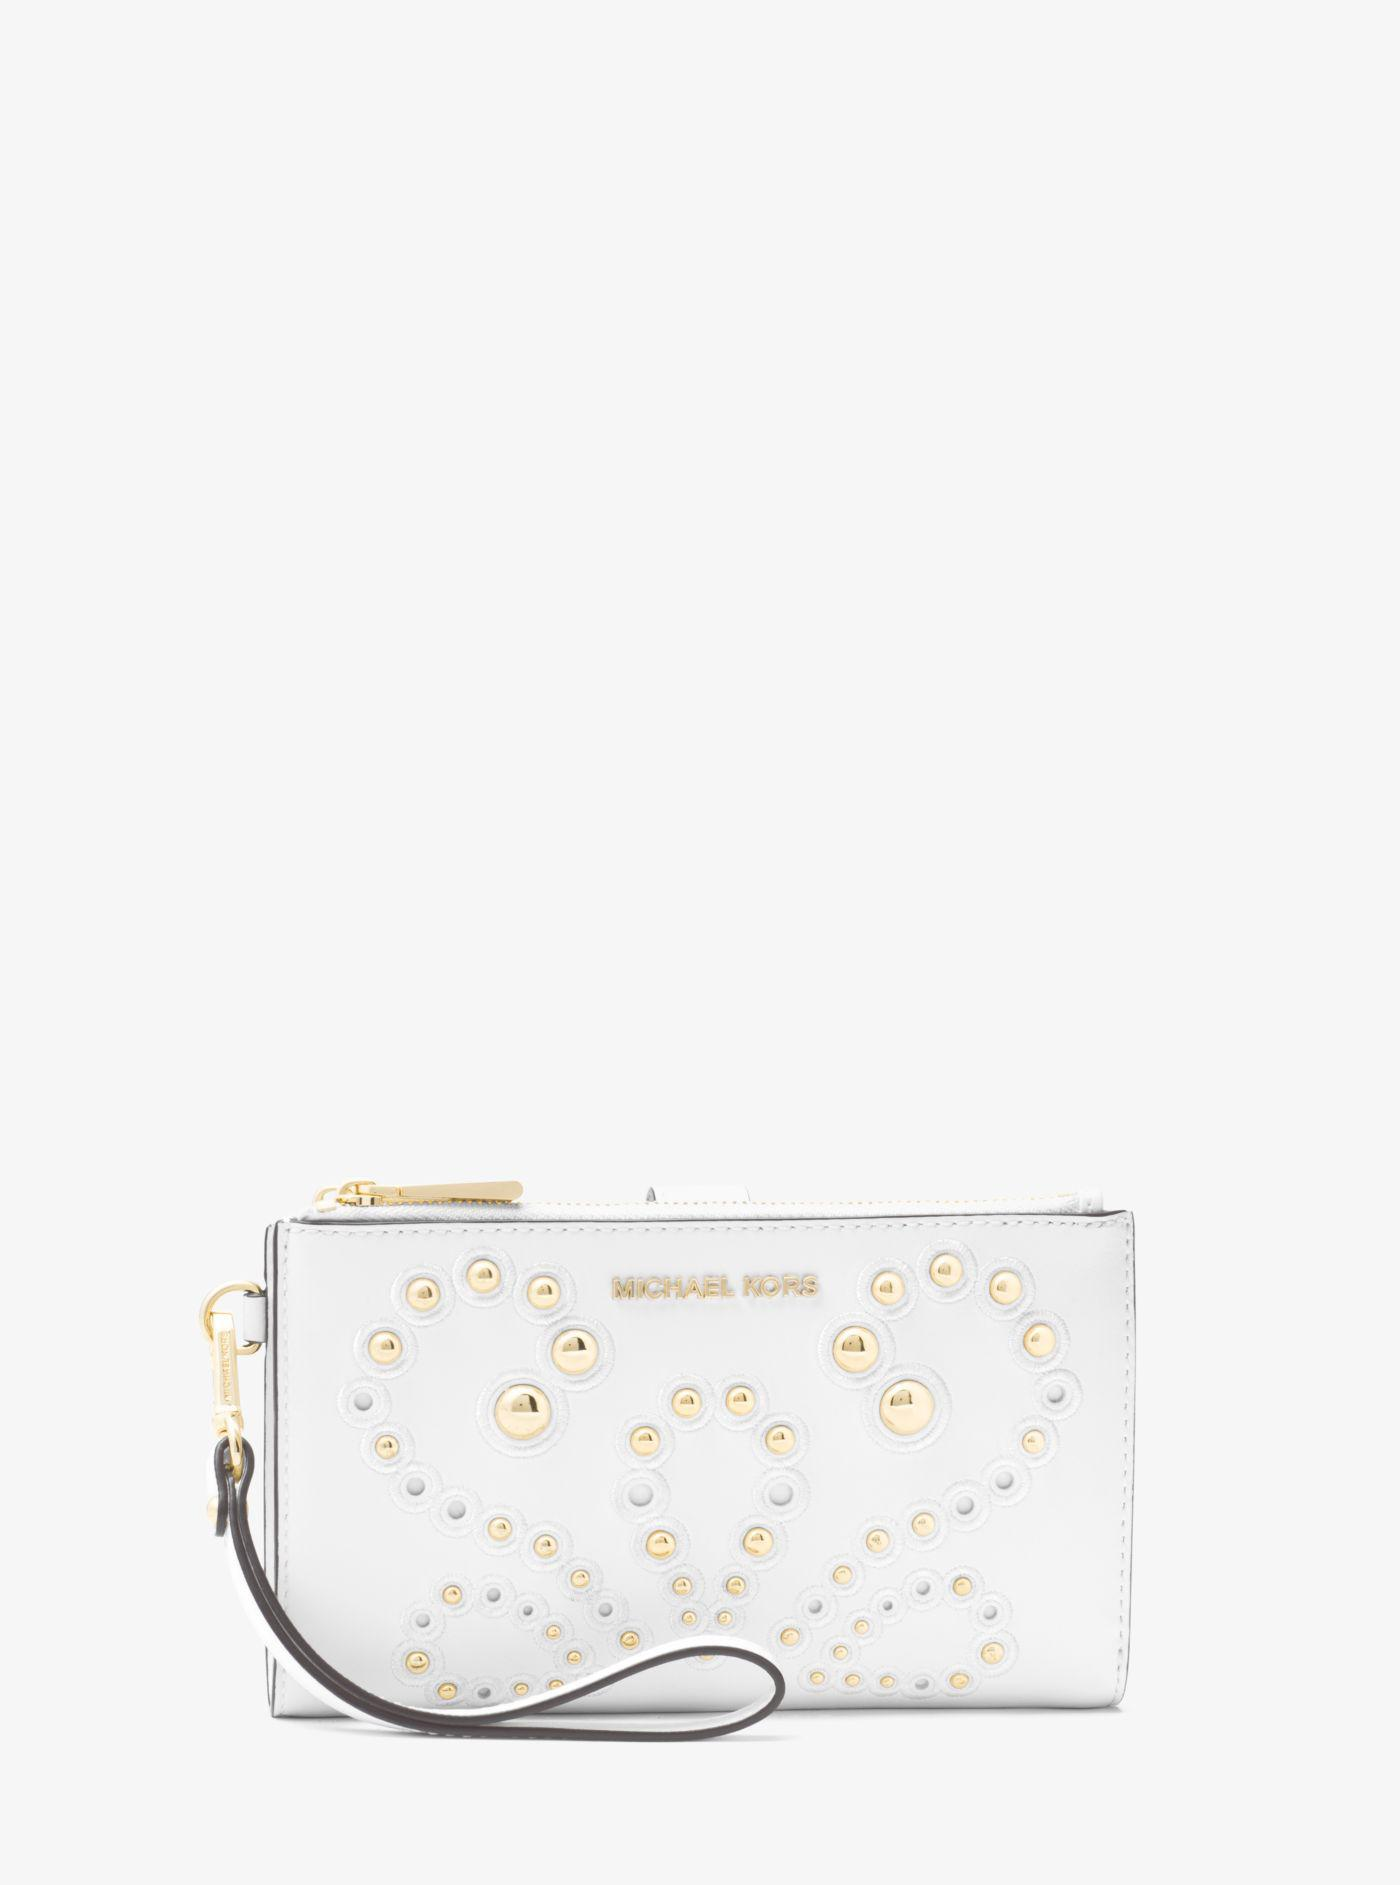 120886f65d68a5 Michael Kors Adele Embellished Leather Smartphone Wristlet in White ...